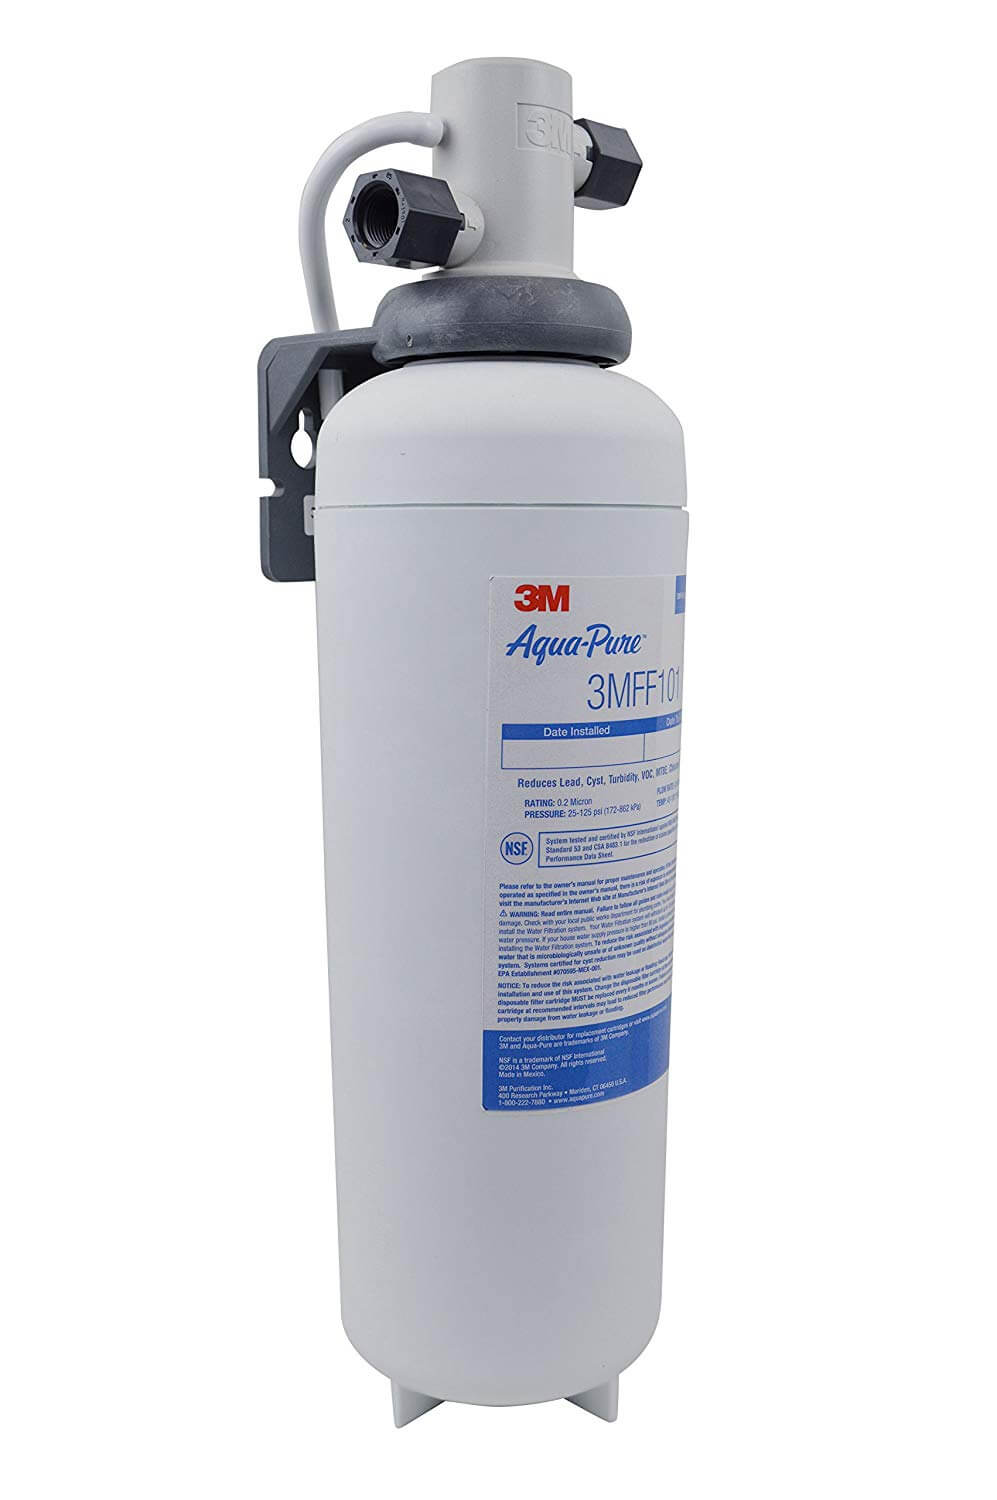 3M Aqua-Pure 3MFF100 Drinking Water Filter System